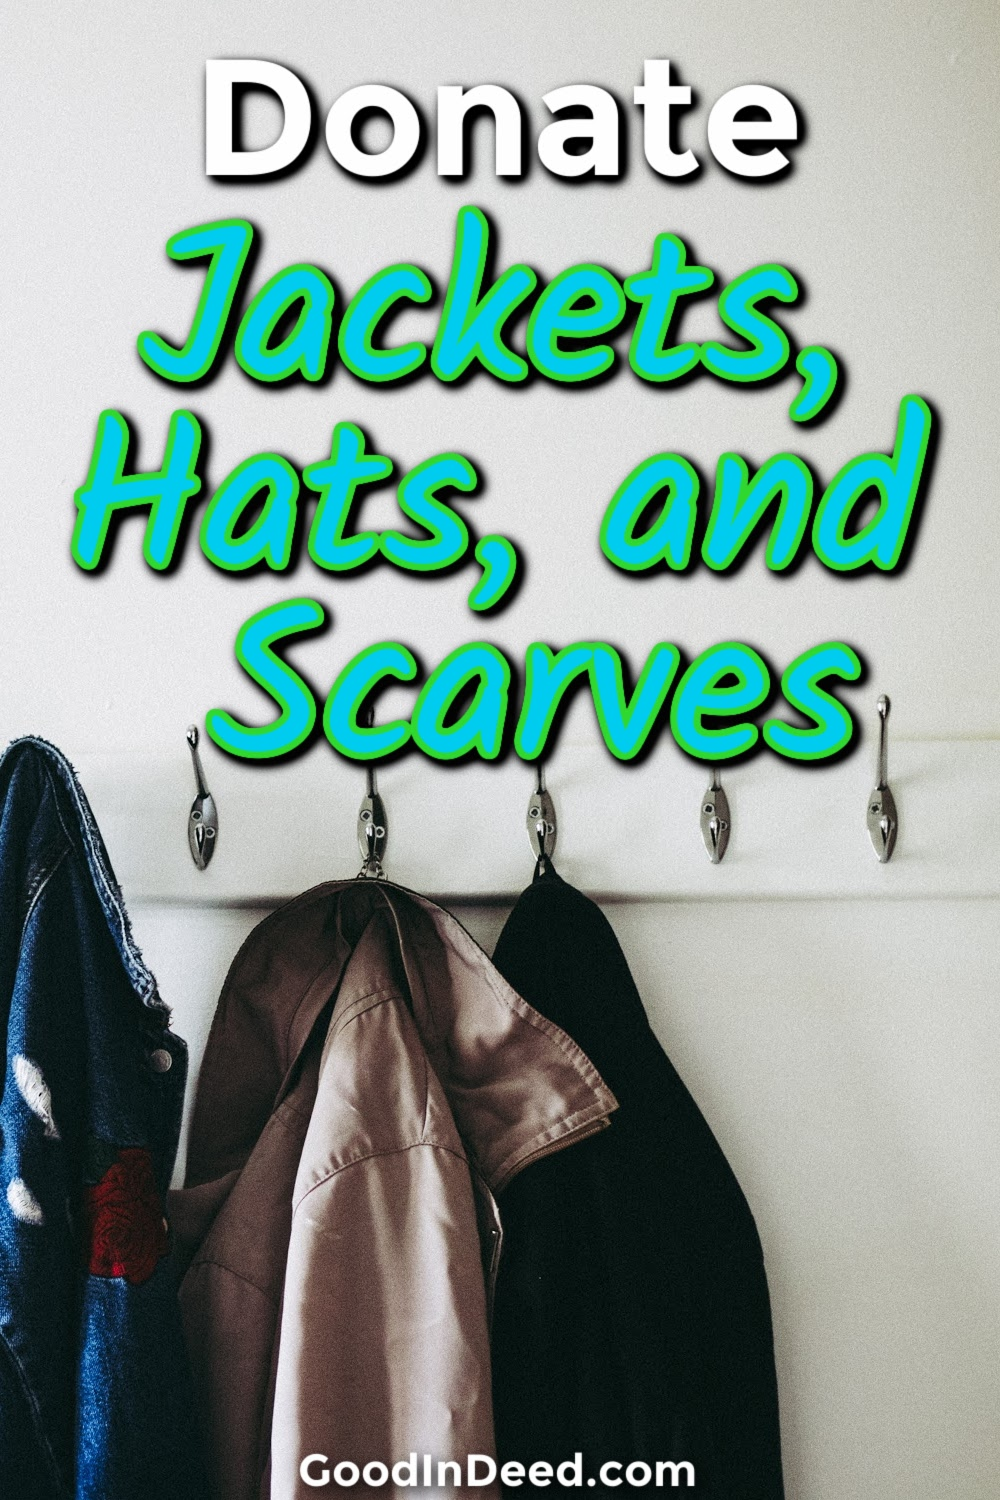 There are so many people in need of warmth, and you can donate jackets you do not plan on using anymore to help get things started.